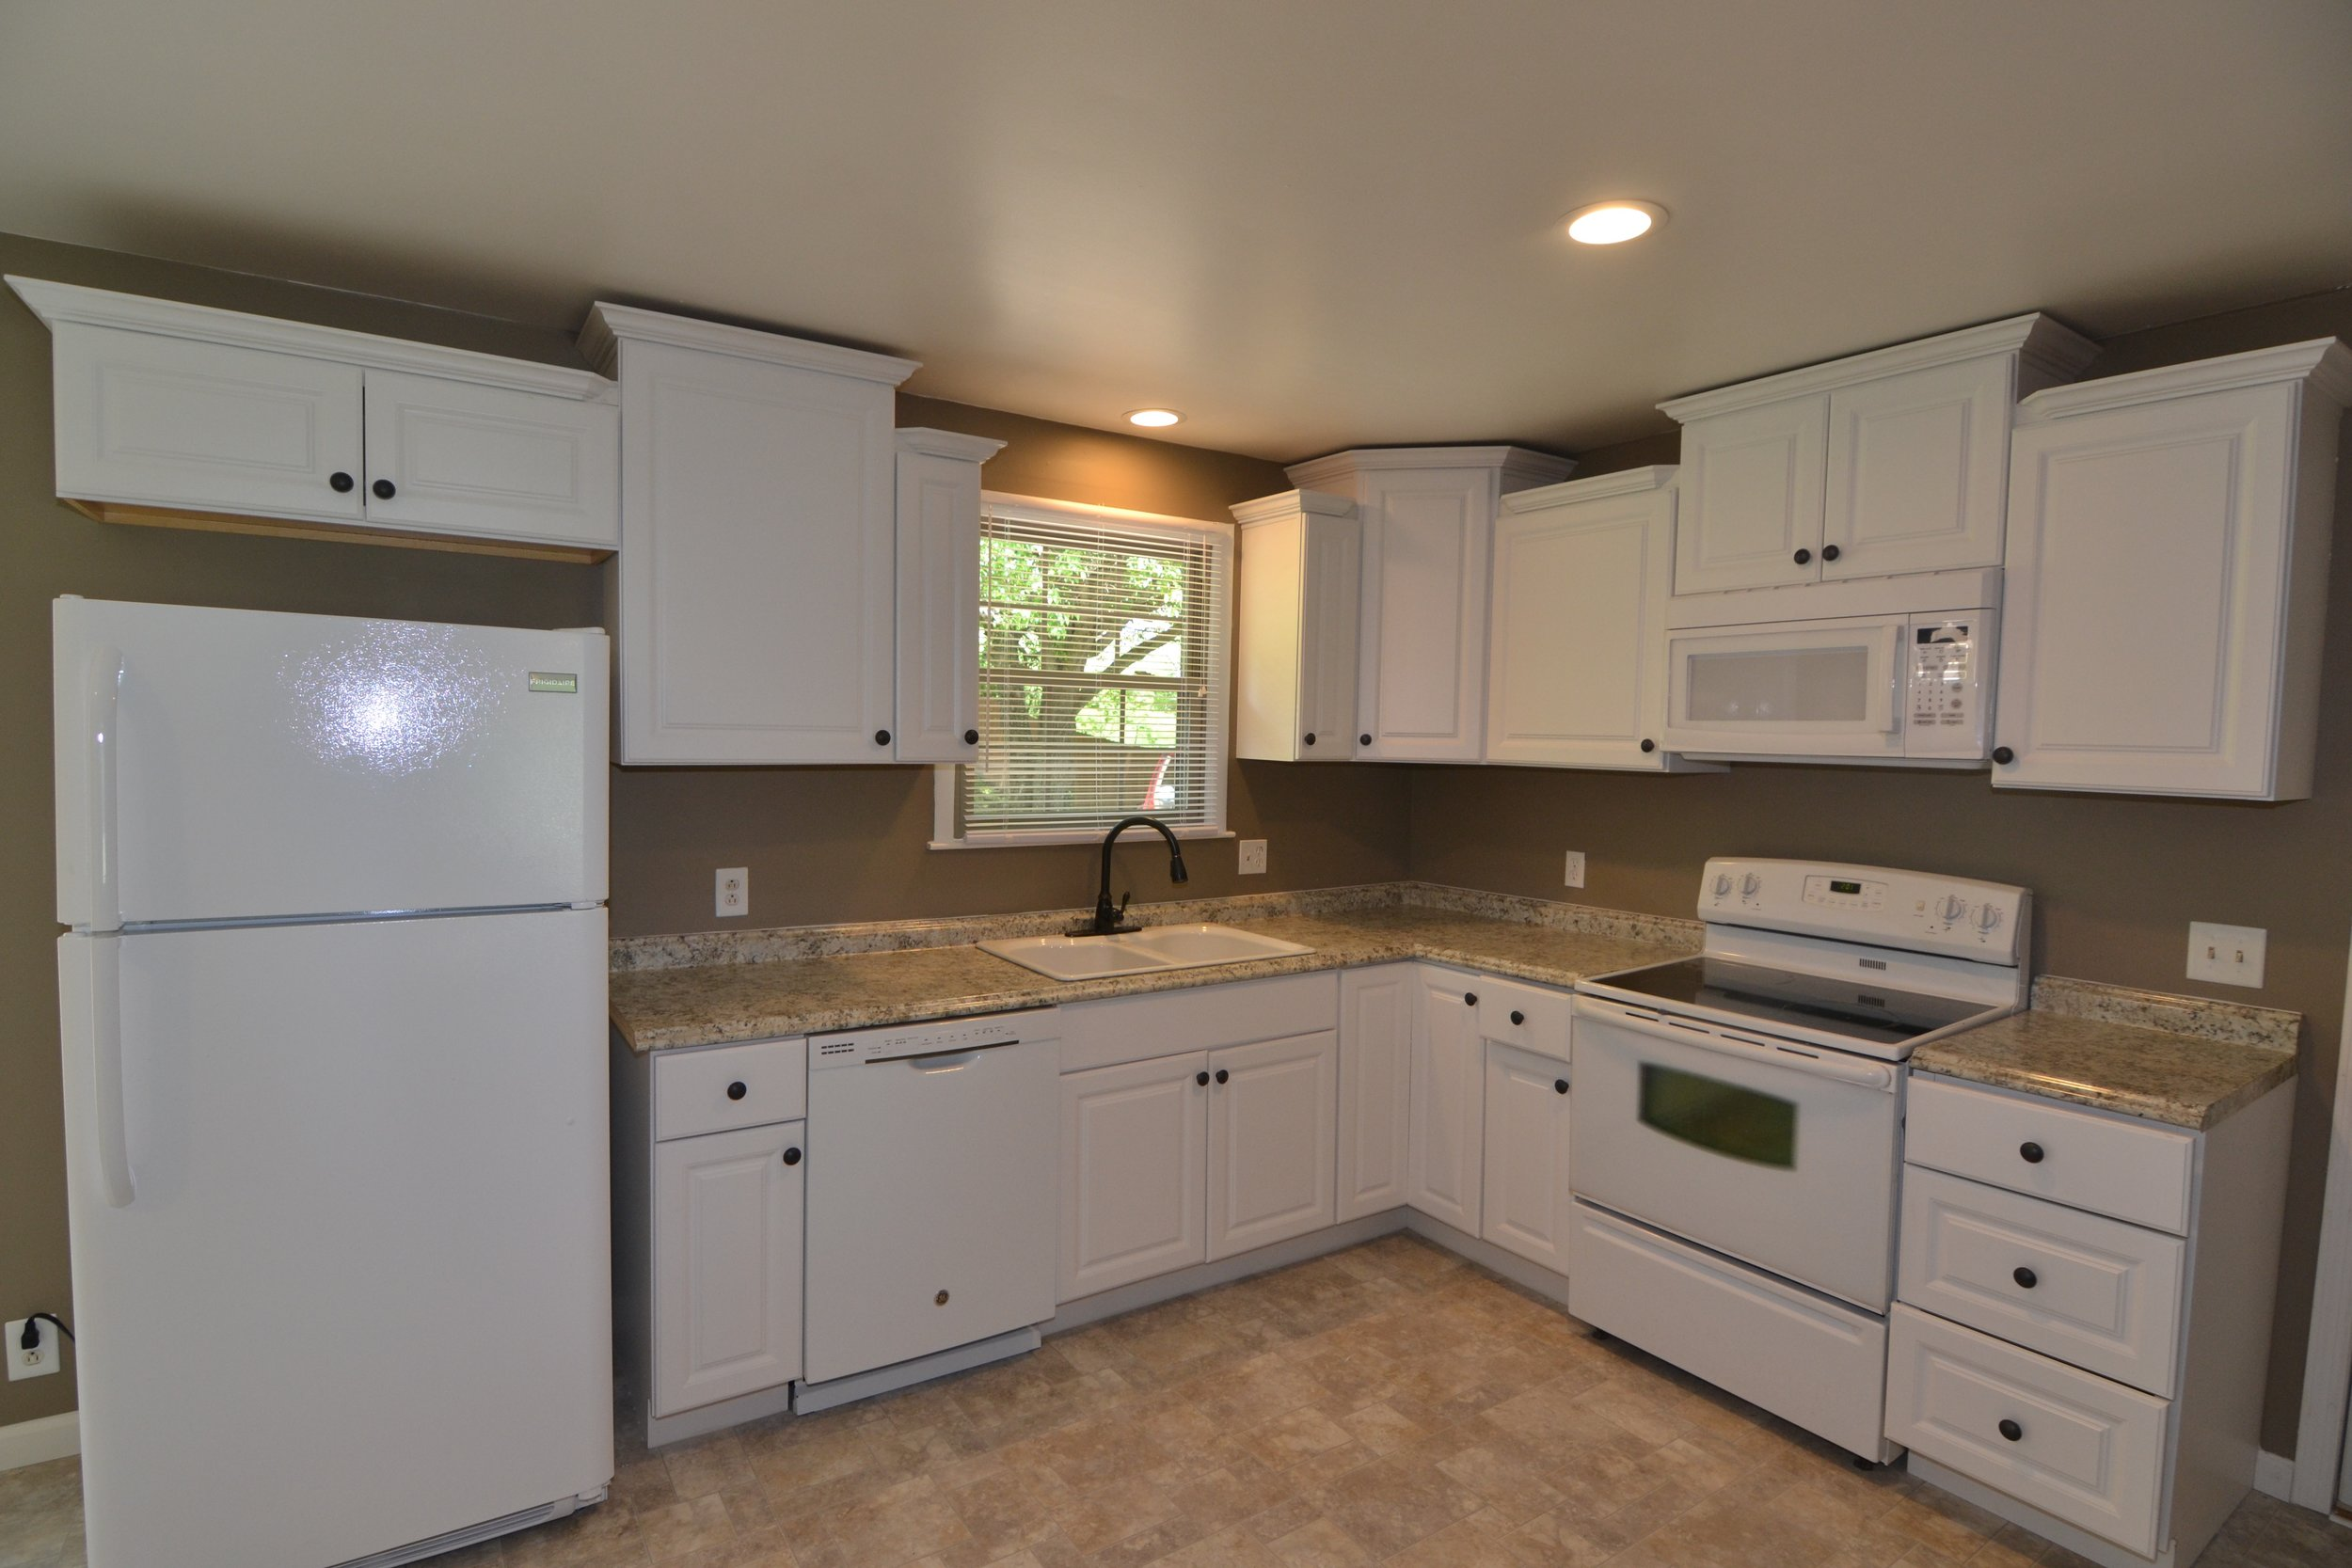 New Kitchen Cabinets, Countertops, Appliances, New Faucets and Hardware